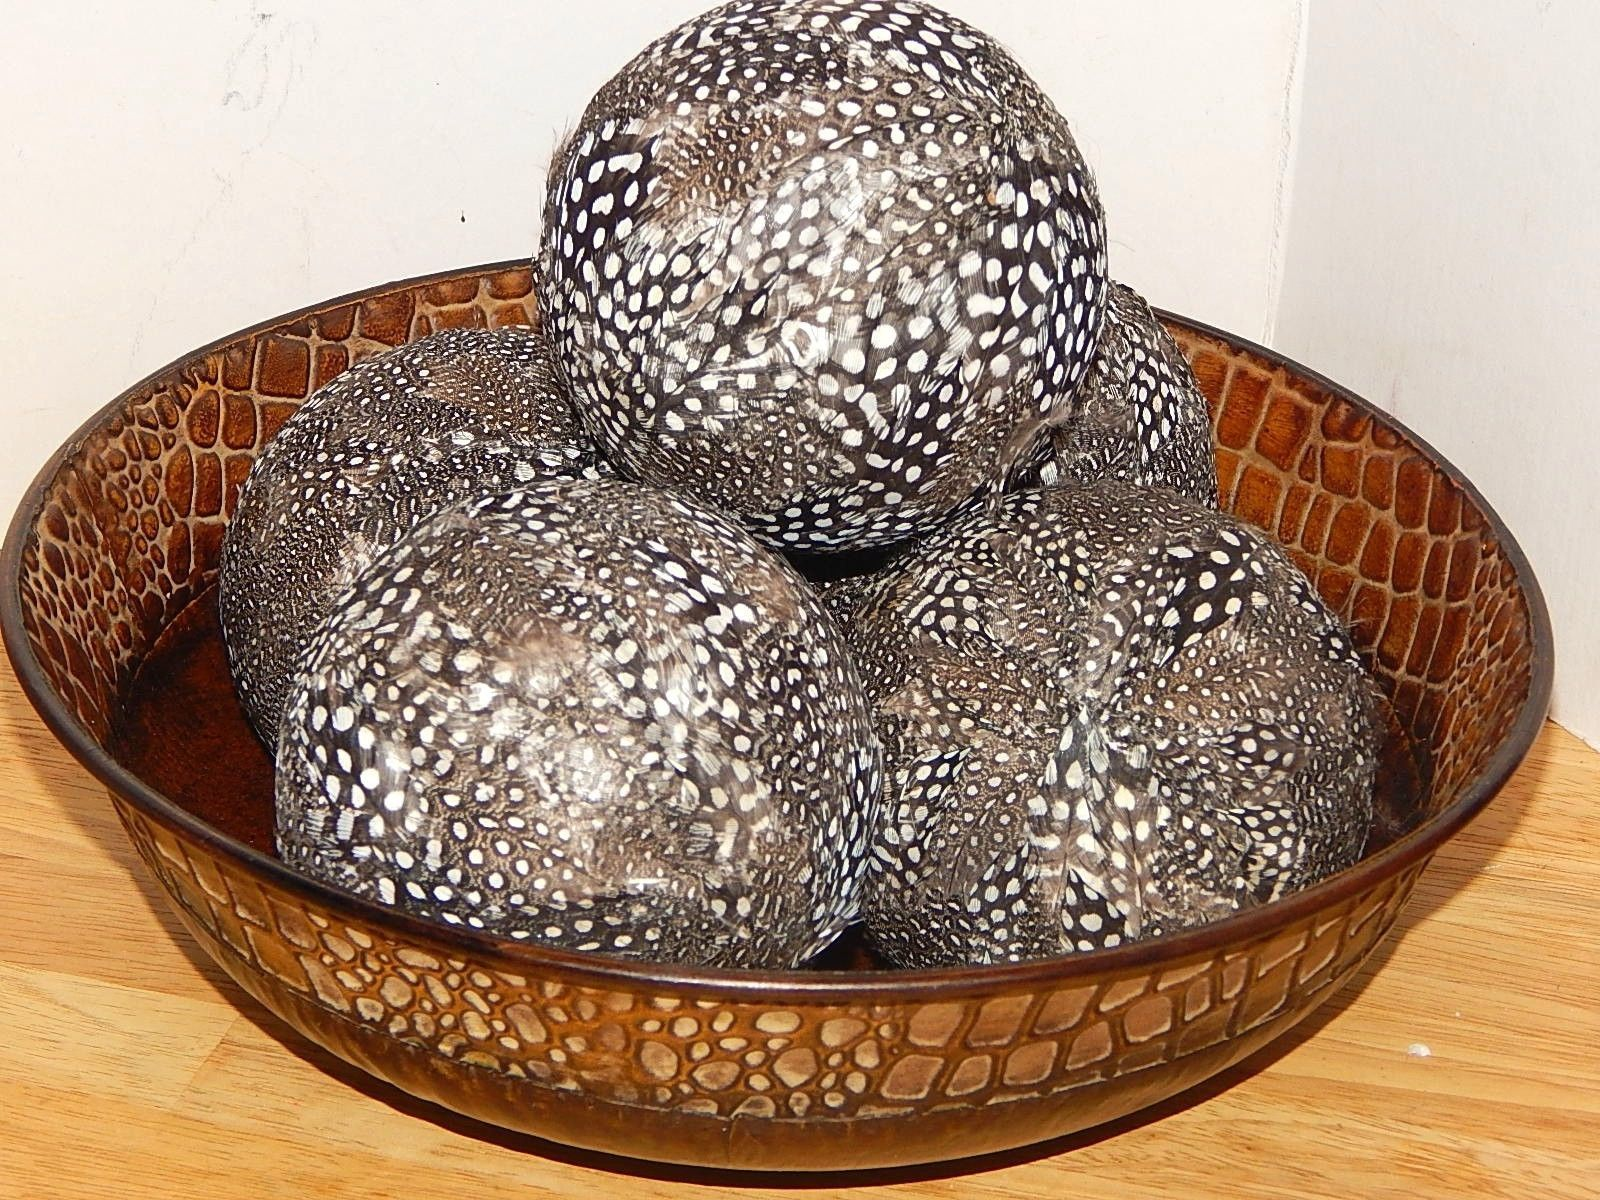 charming decorative orbs with black dotted on brown ceramic bowl for table accessories ideas